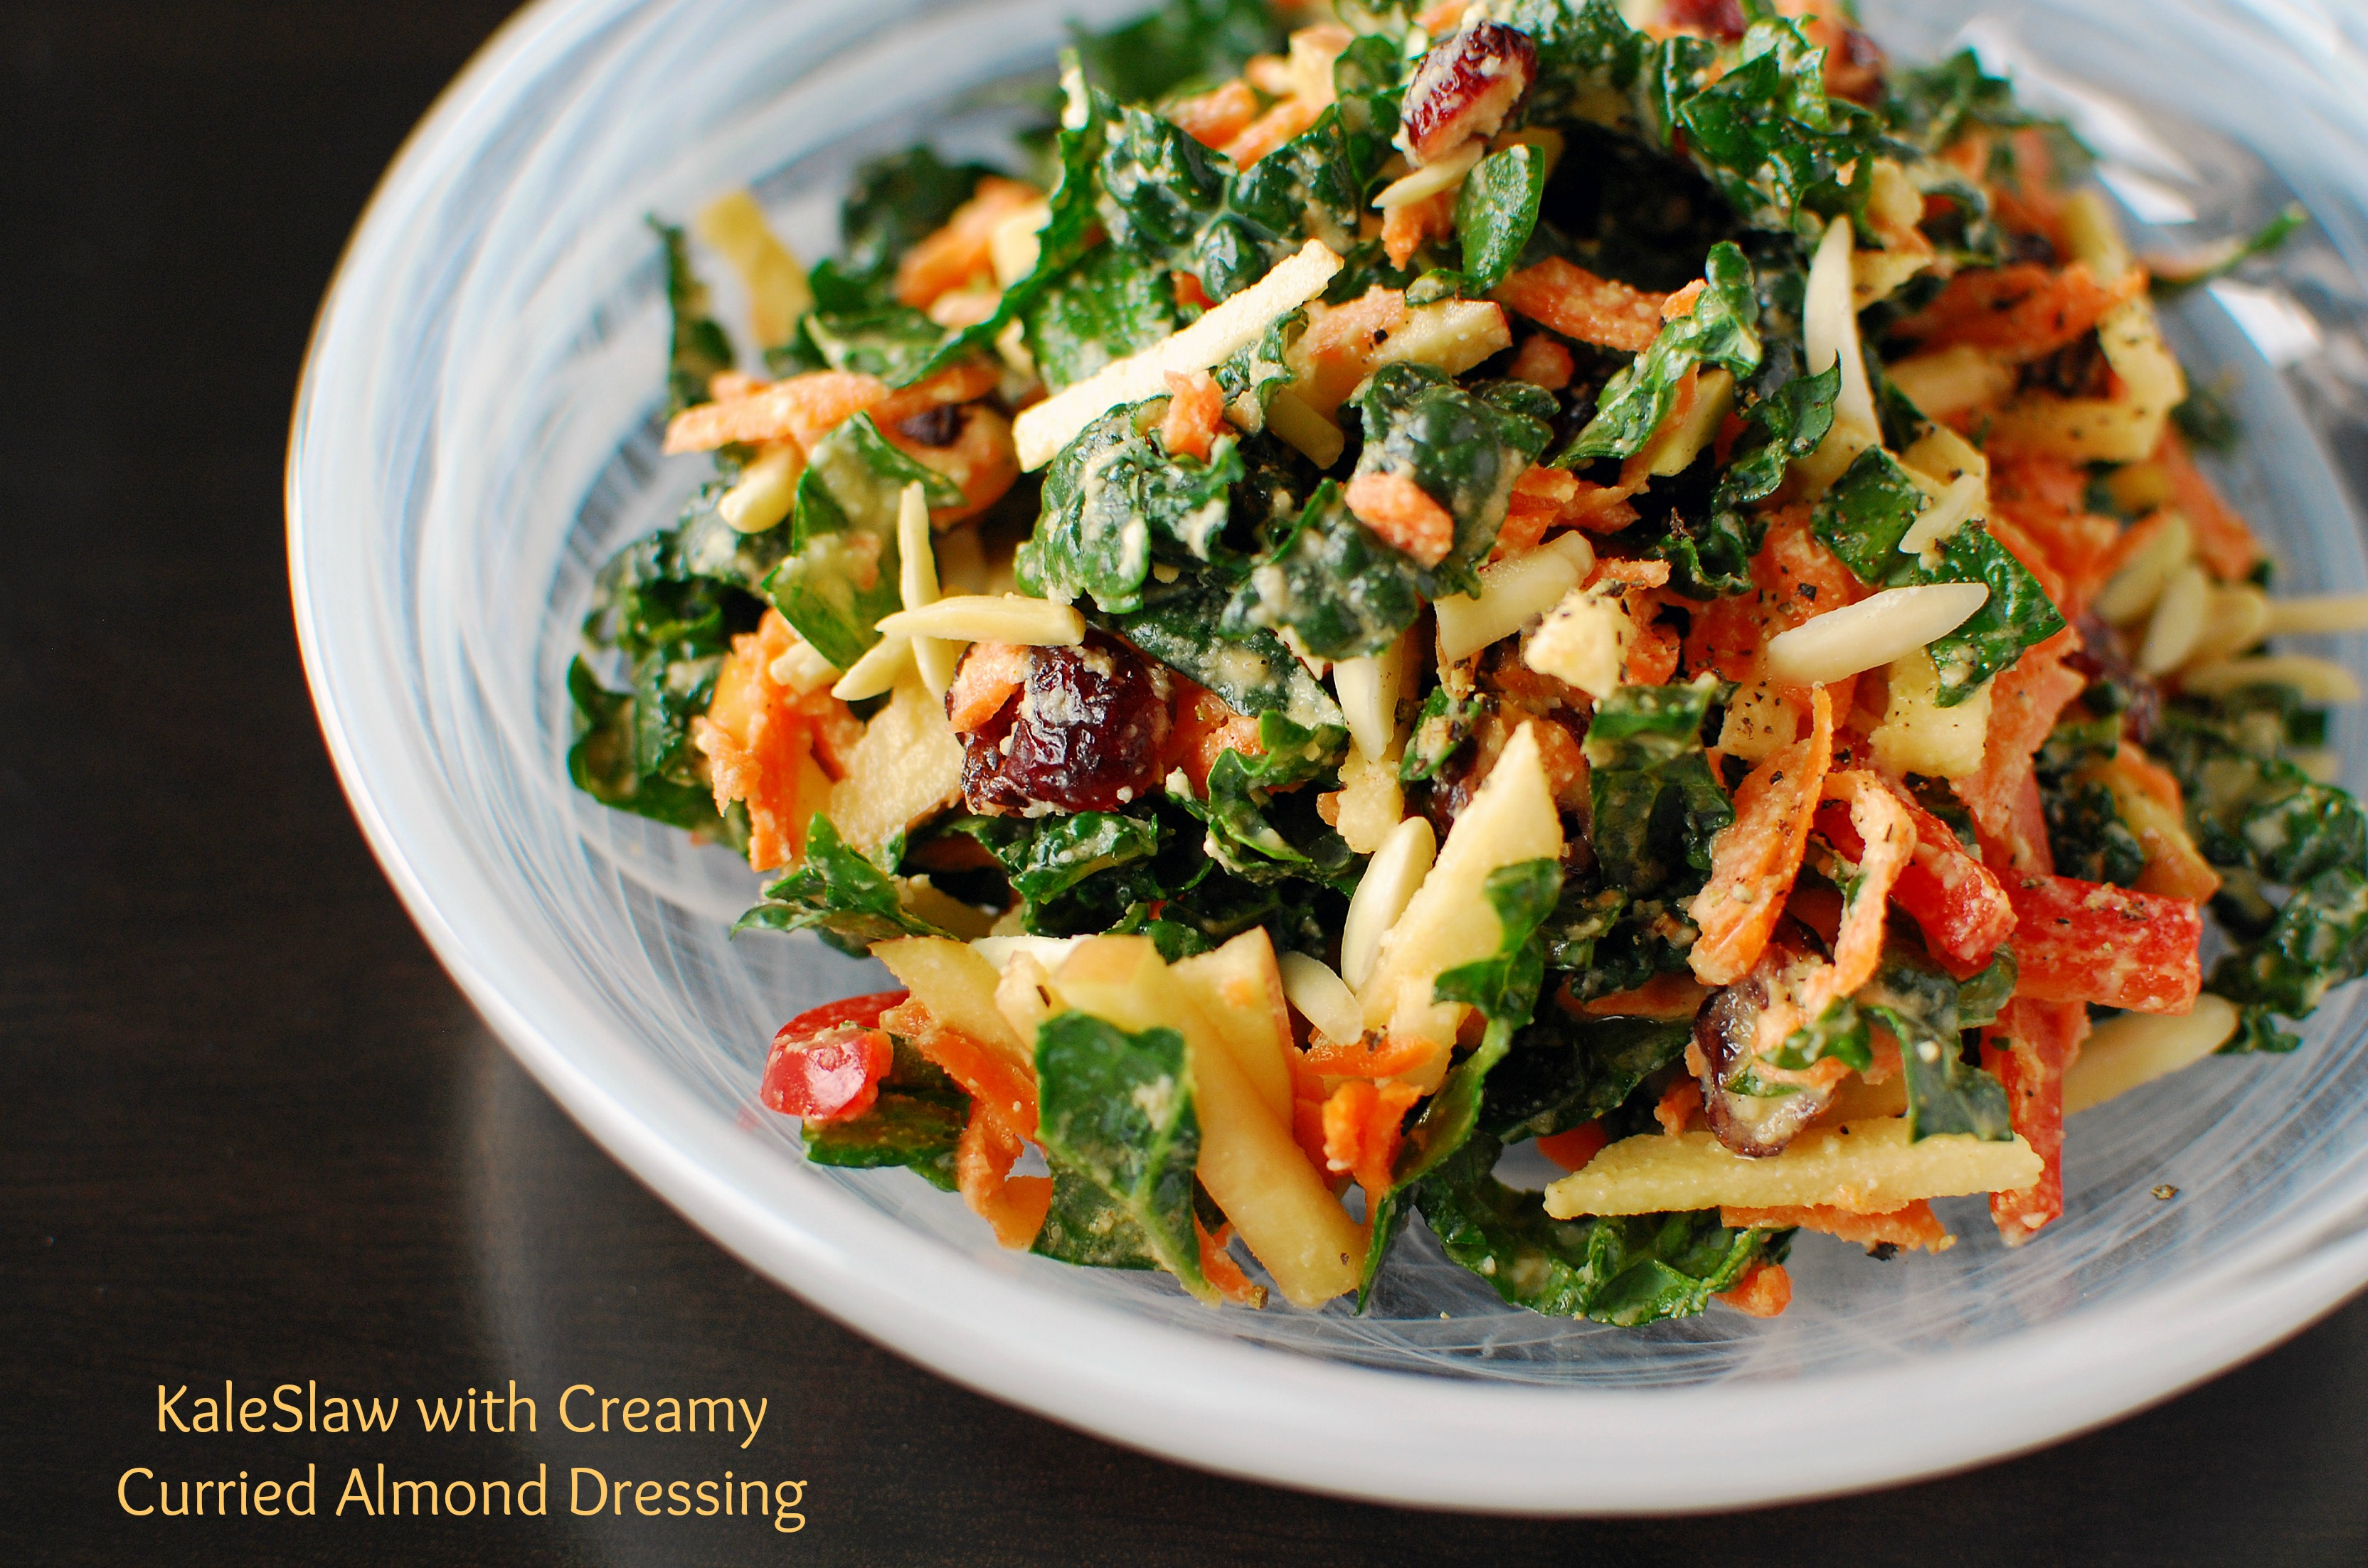 Kale Slaw with Creamy Curried Almond Dressing from Let Them Eat Vegan